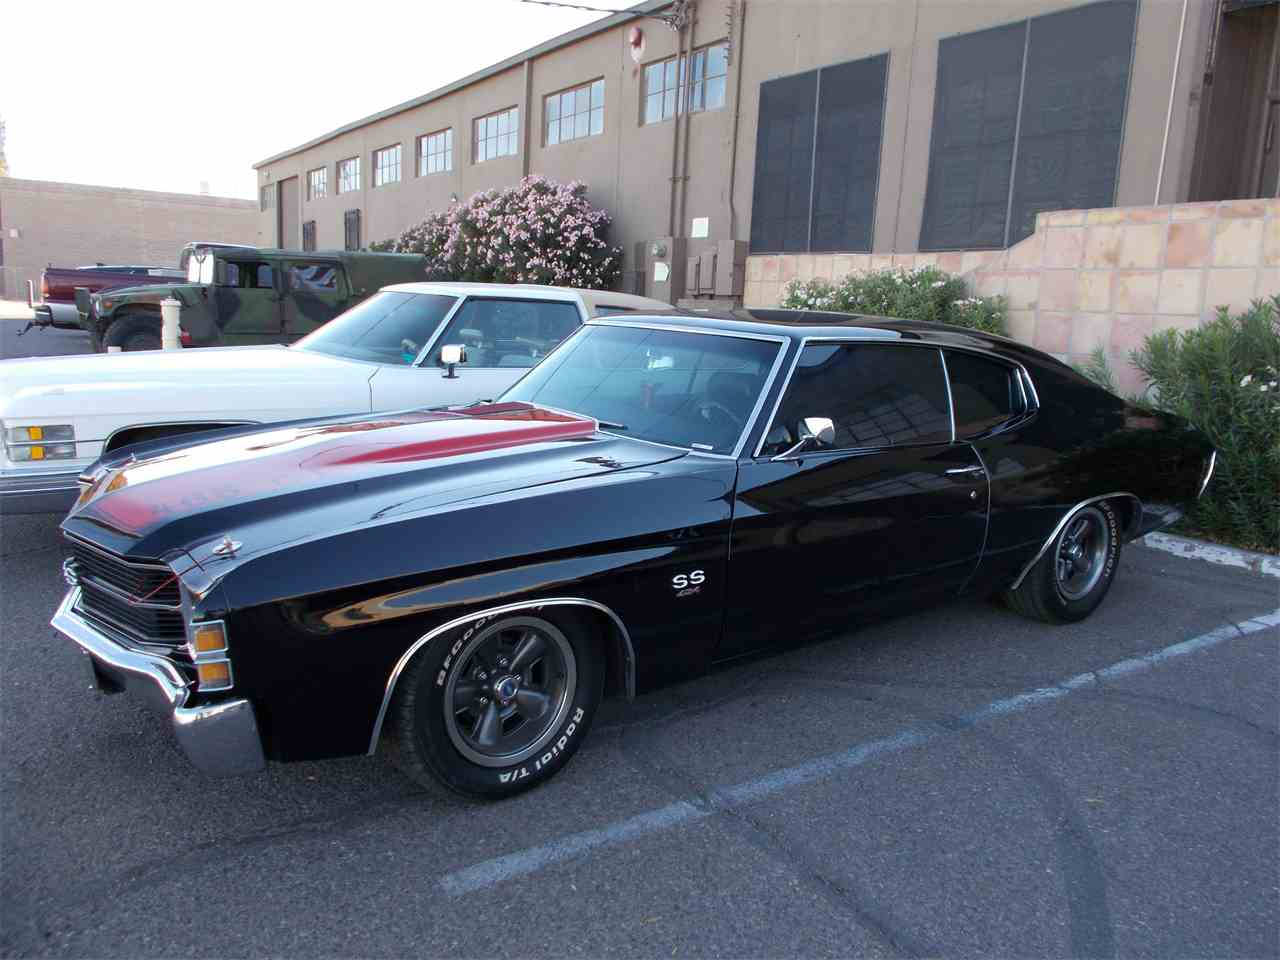 All Chevy 1971 chevrolet chevelle ss : 1971 Chevrolet Chevelle SS for Sale | ClassicCars.com | CC-984391